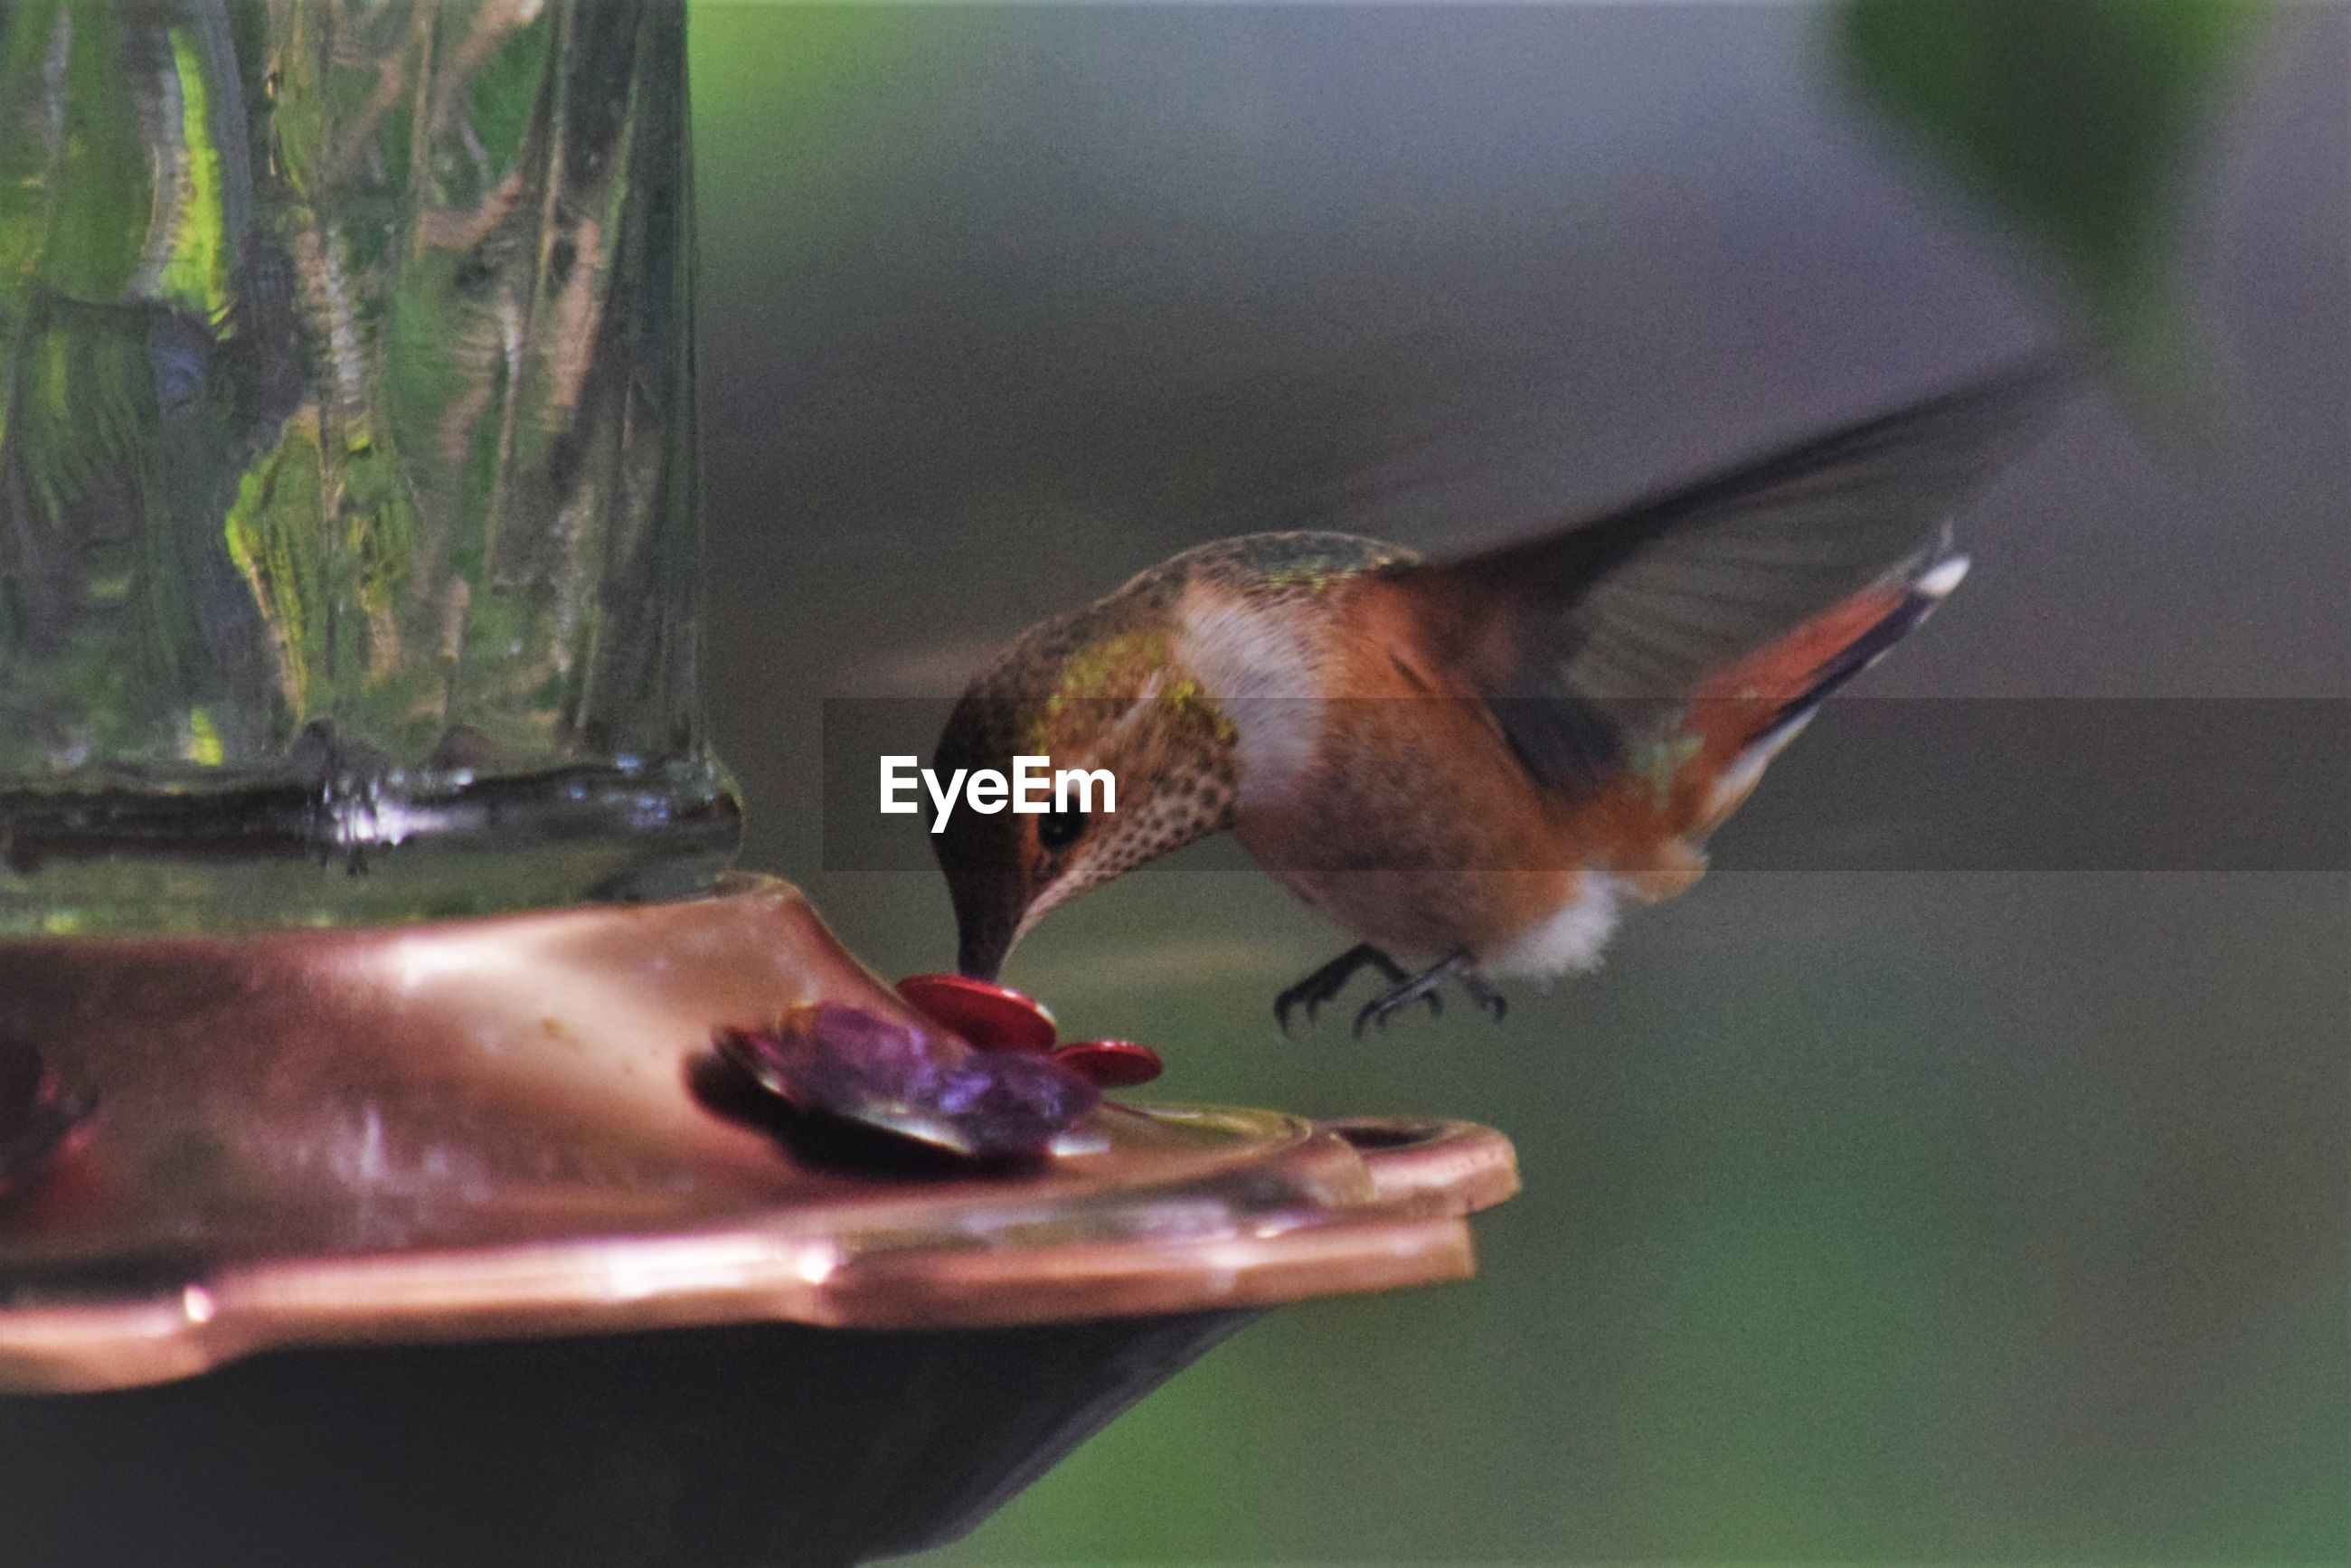 animal, animal themes, bird, animal wildlife, wildlife, hummingbird, one animal, beak, eating, close-up, bird feeder, no people, food, feeding, nature, food and drink, day, flying, focus on foreground, outdoors